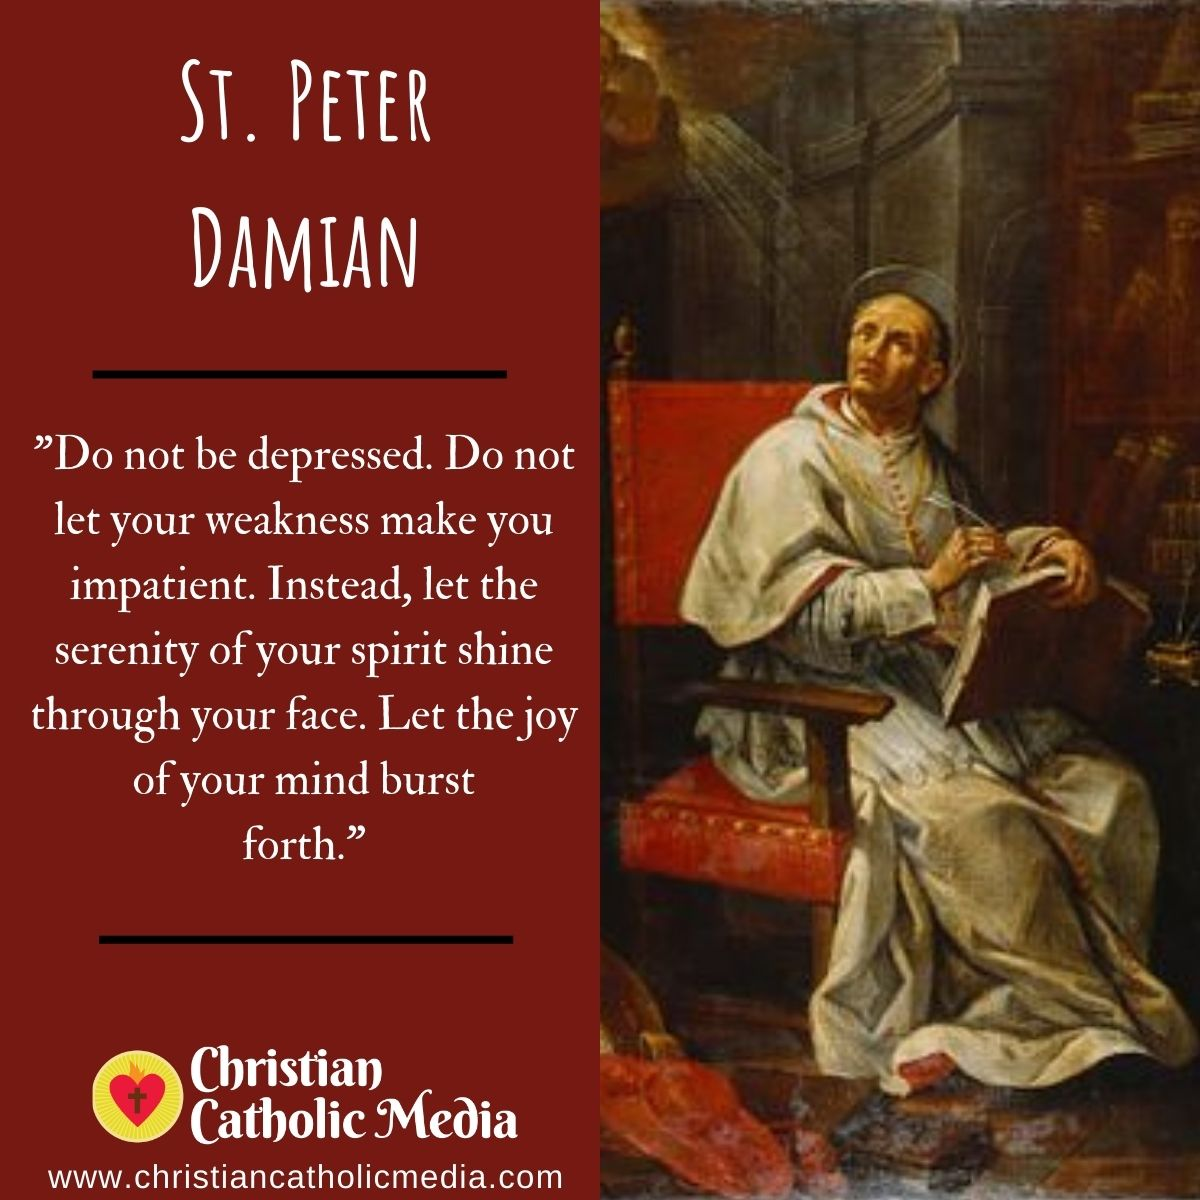 St. Peter Damian - Sunday February 21, 2021